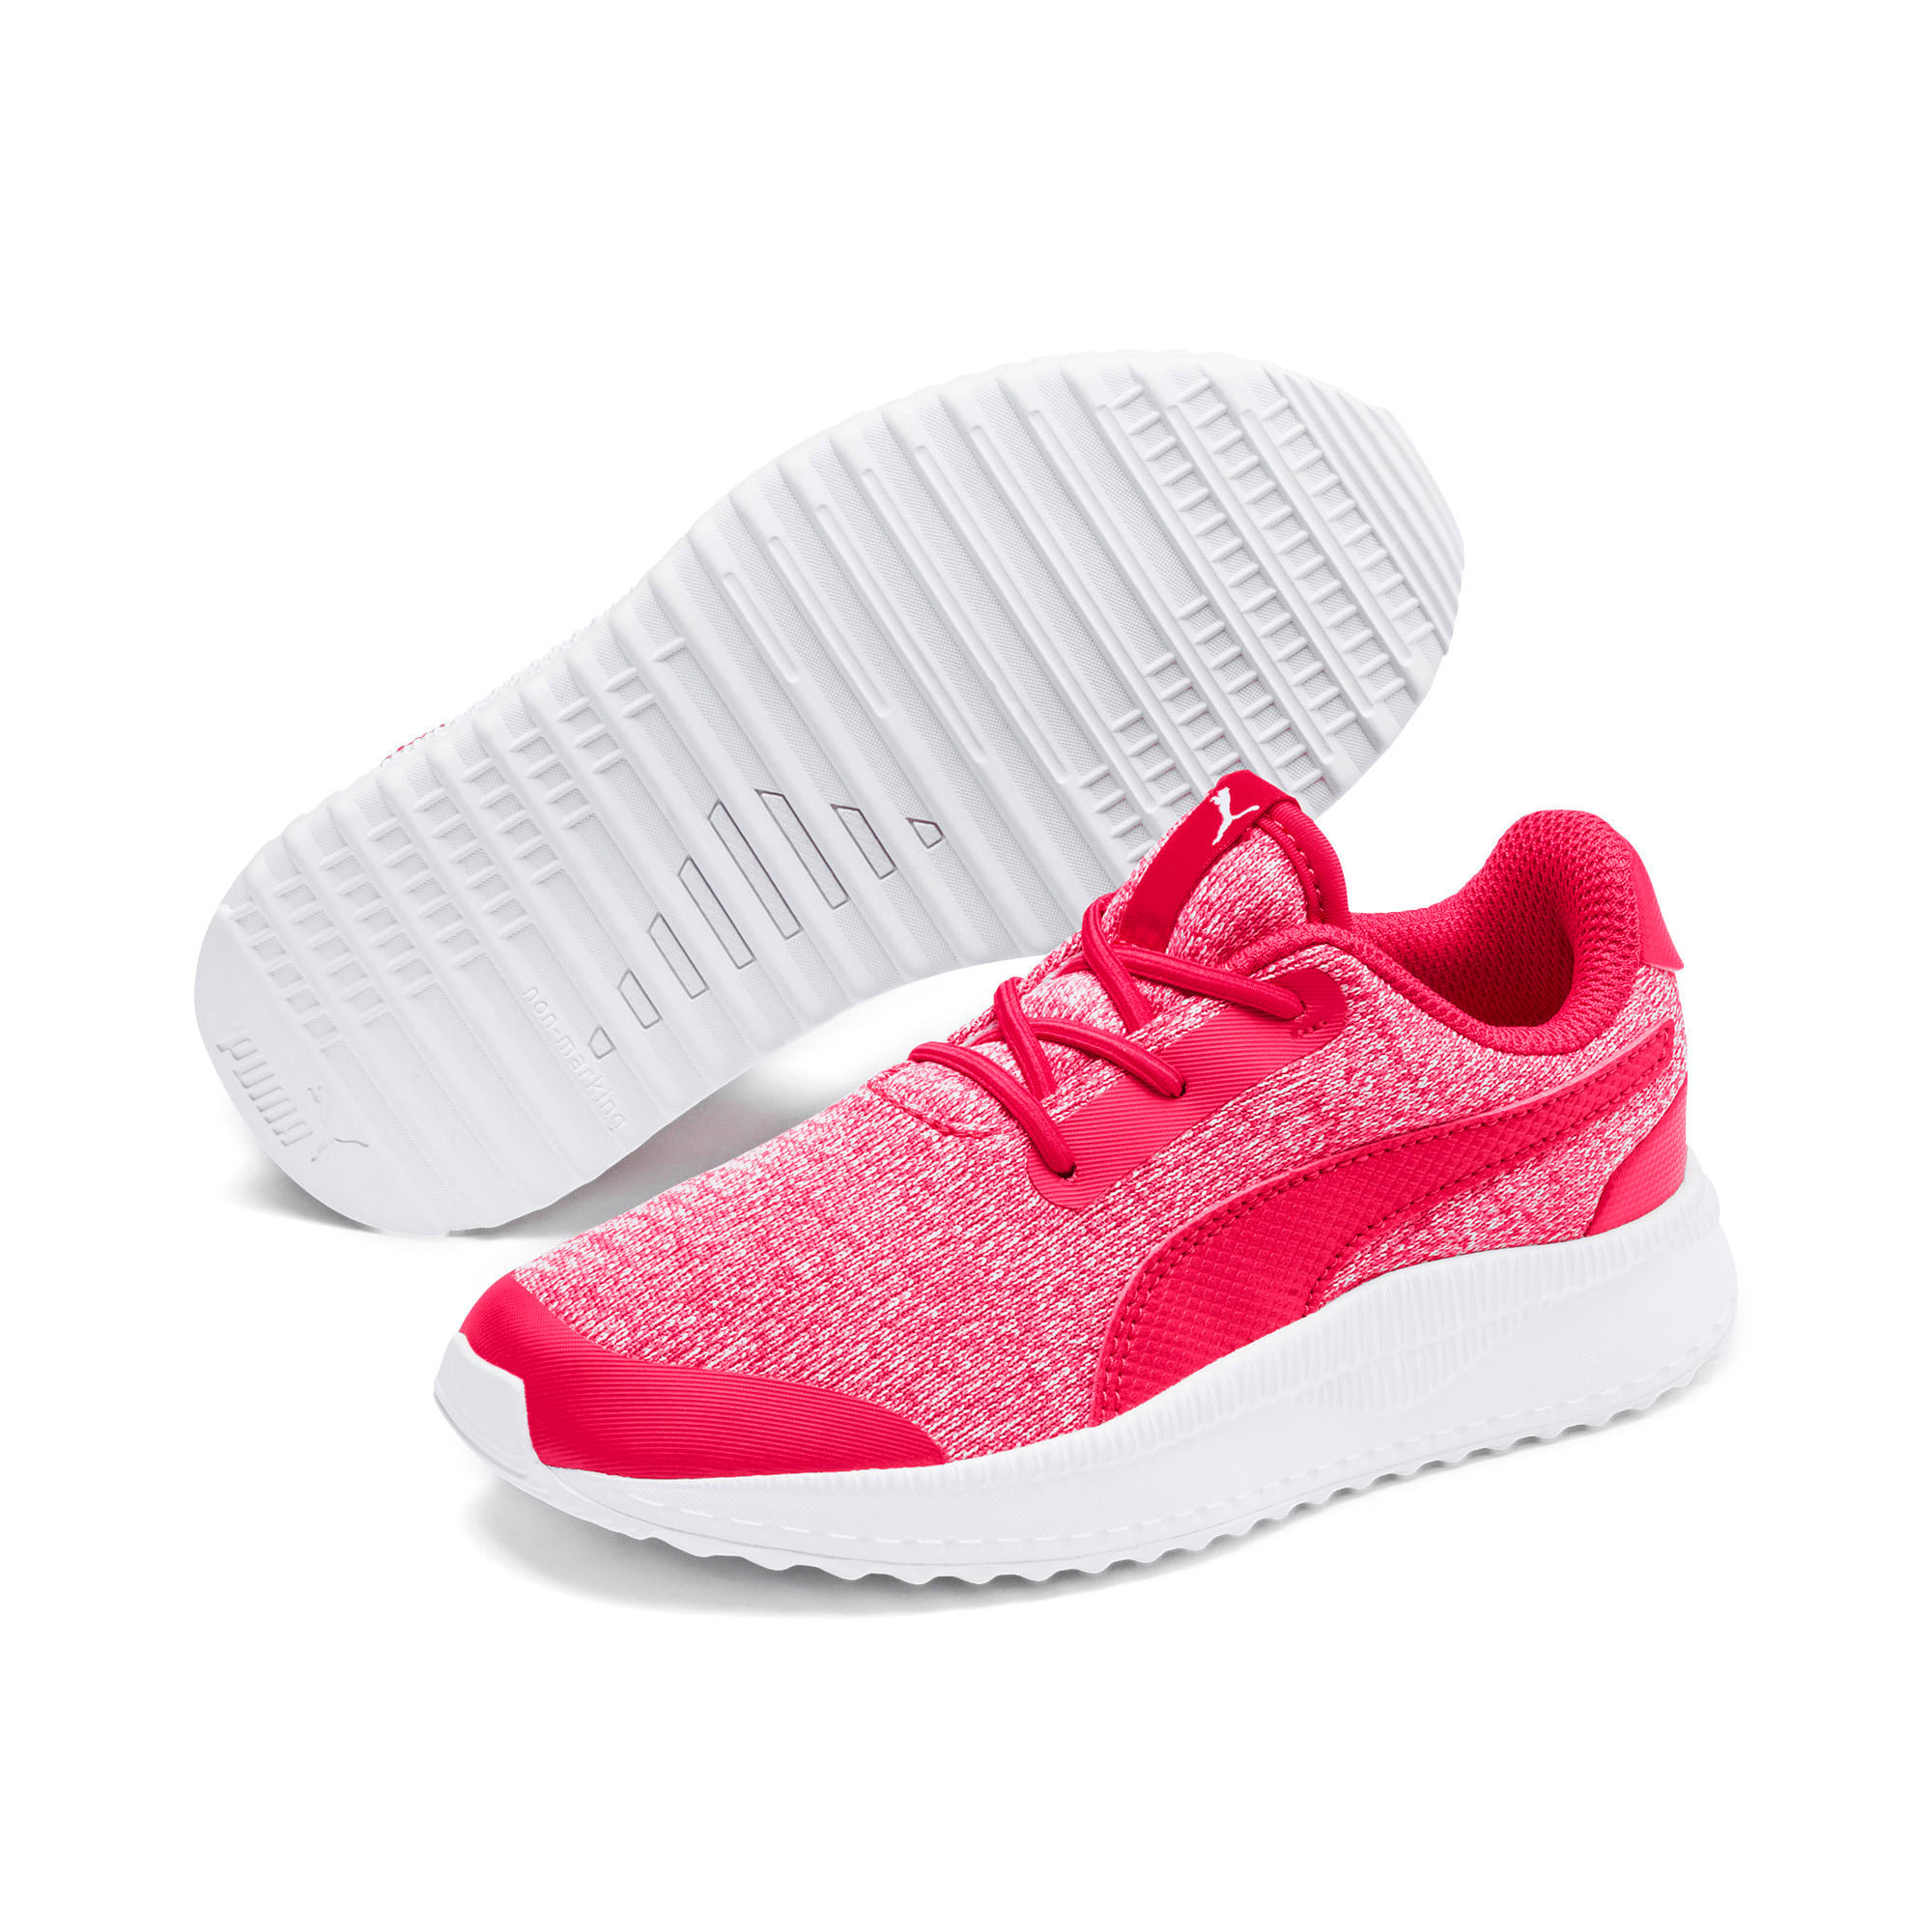 Thumbnail 2 of Pacer Next FS Knit AC Kids Sneaker, Nrgy Rose-Puma White, medium